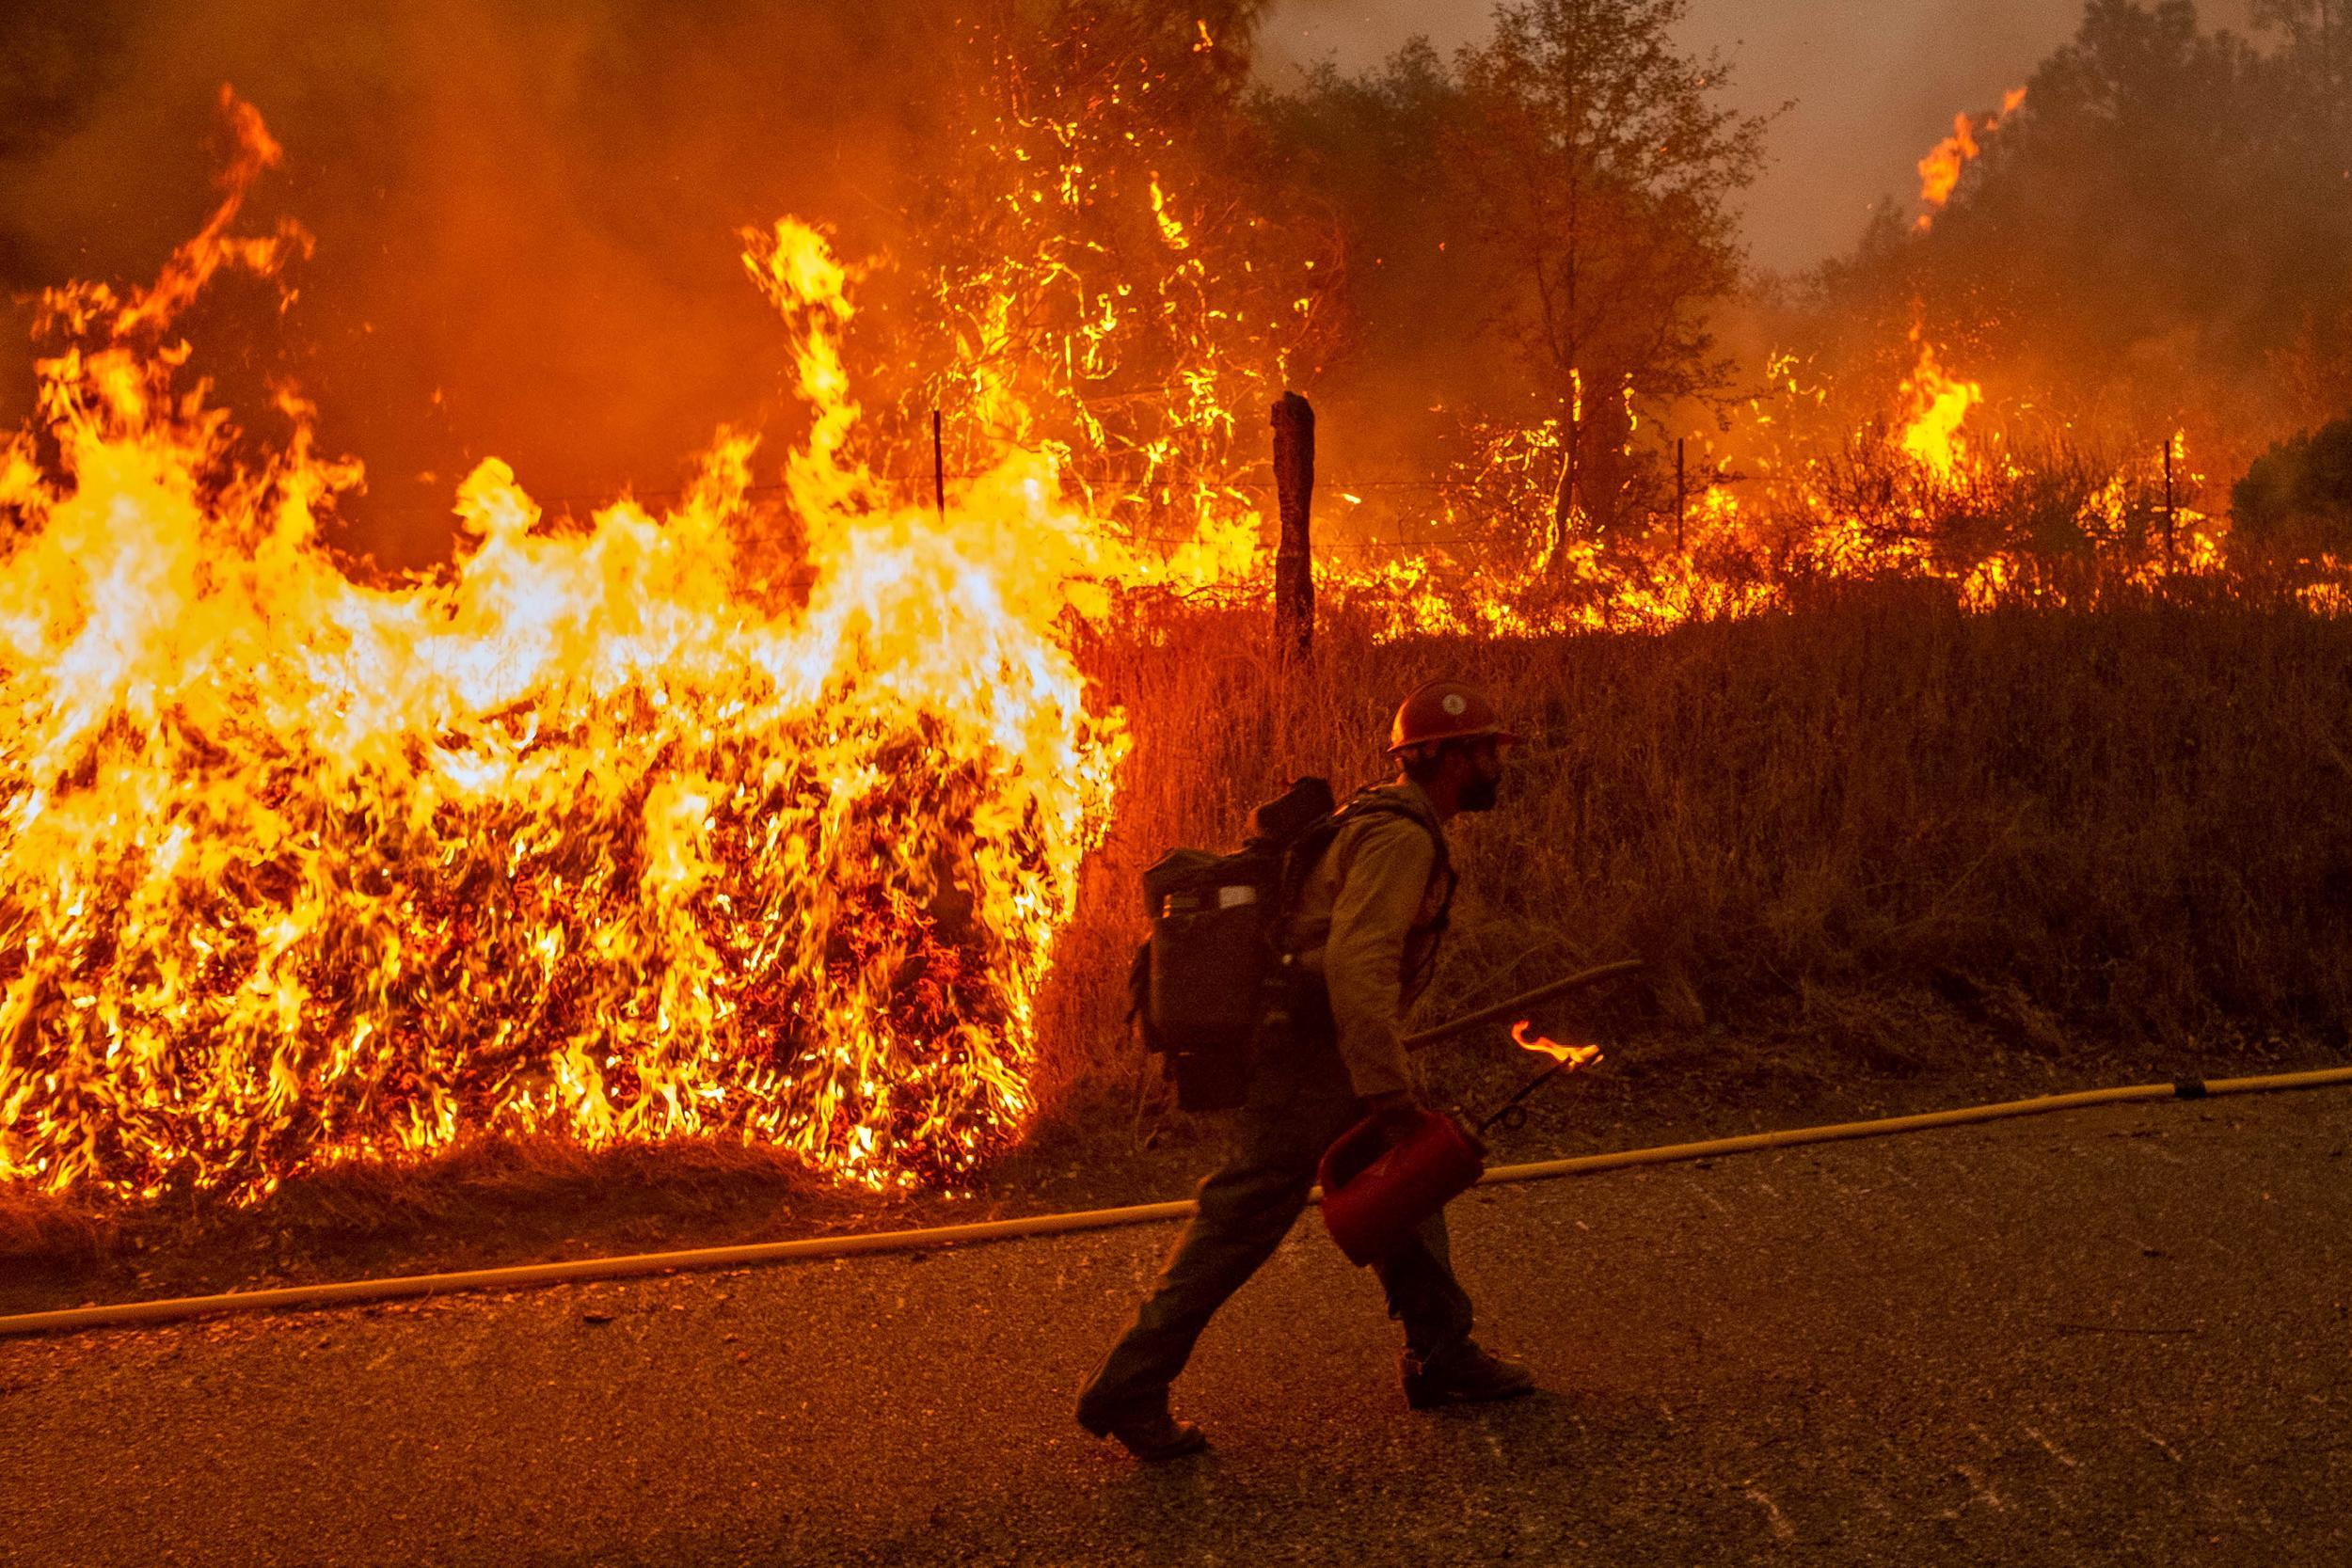 Firefighter walking along road edge with drip torch. Flames in background from back-burning.